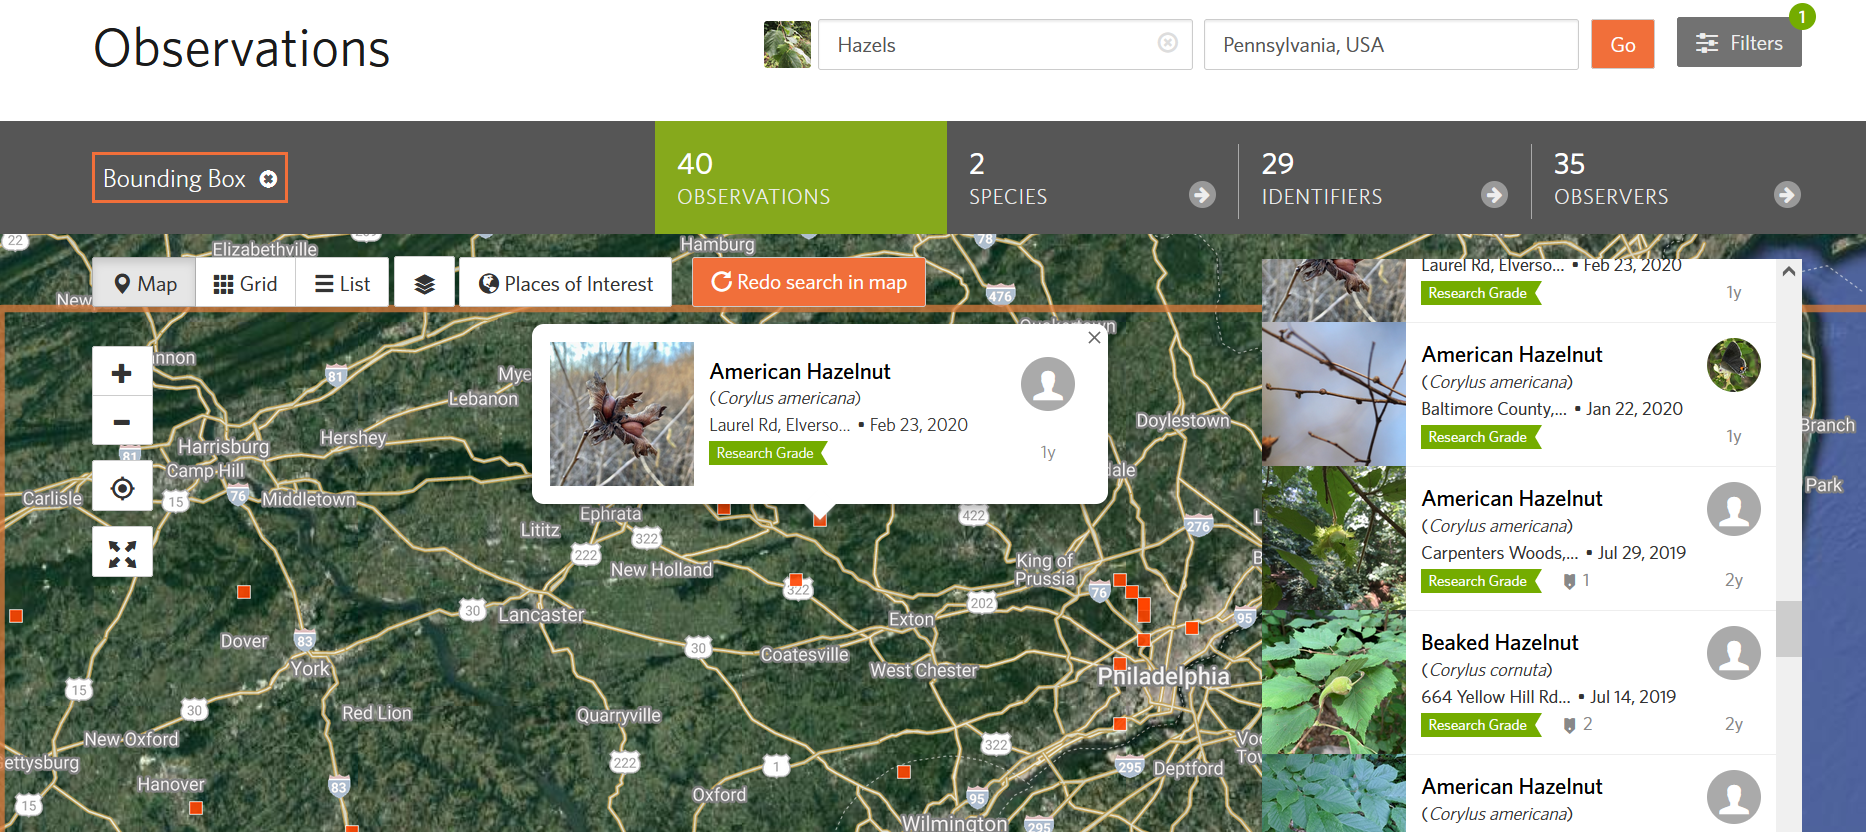 iNaturalist search results zoomed in on southeast PA for observations of Corylus spp.